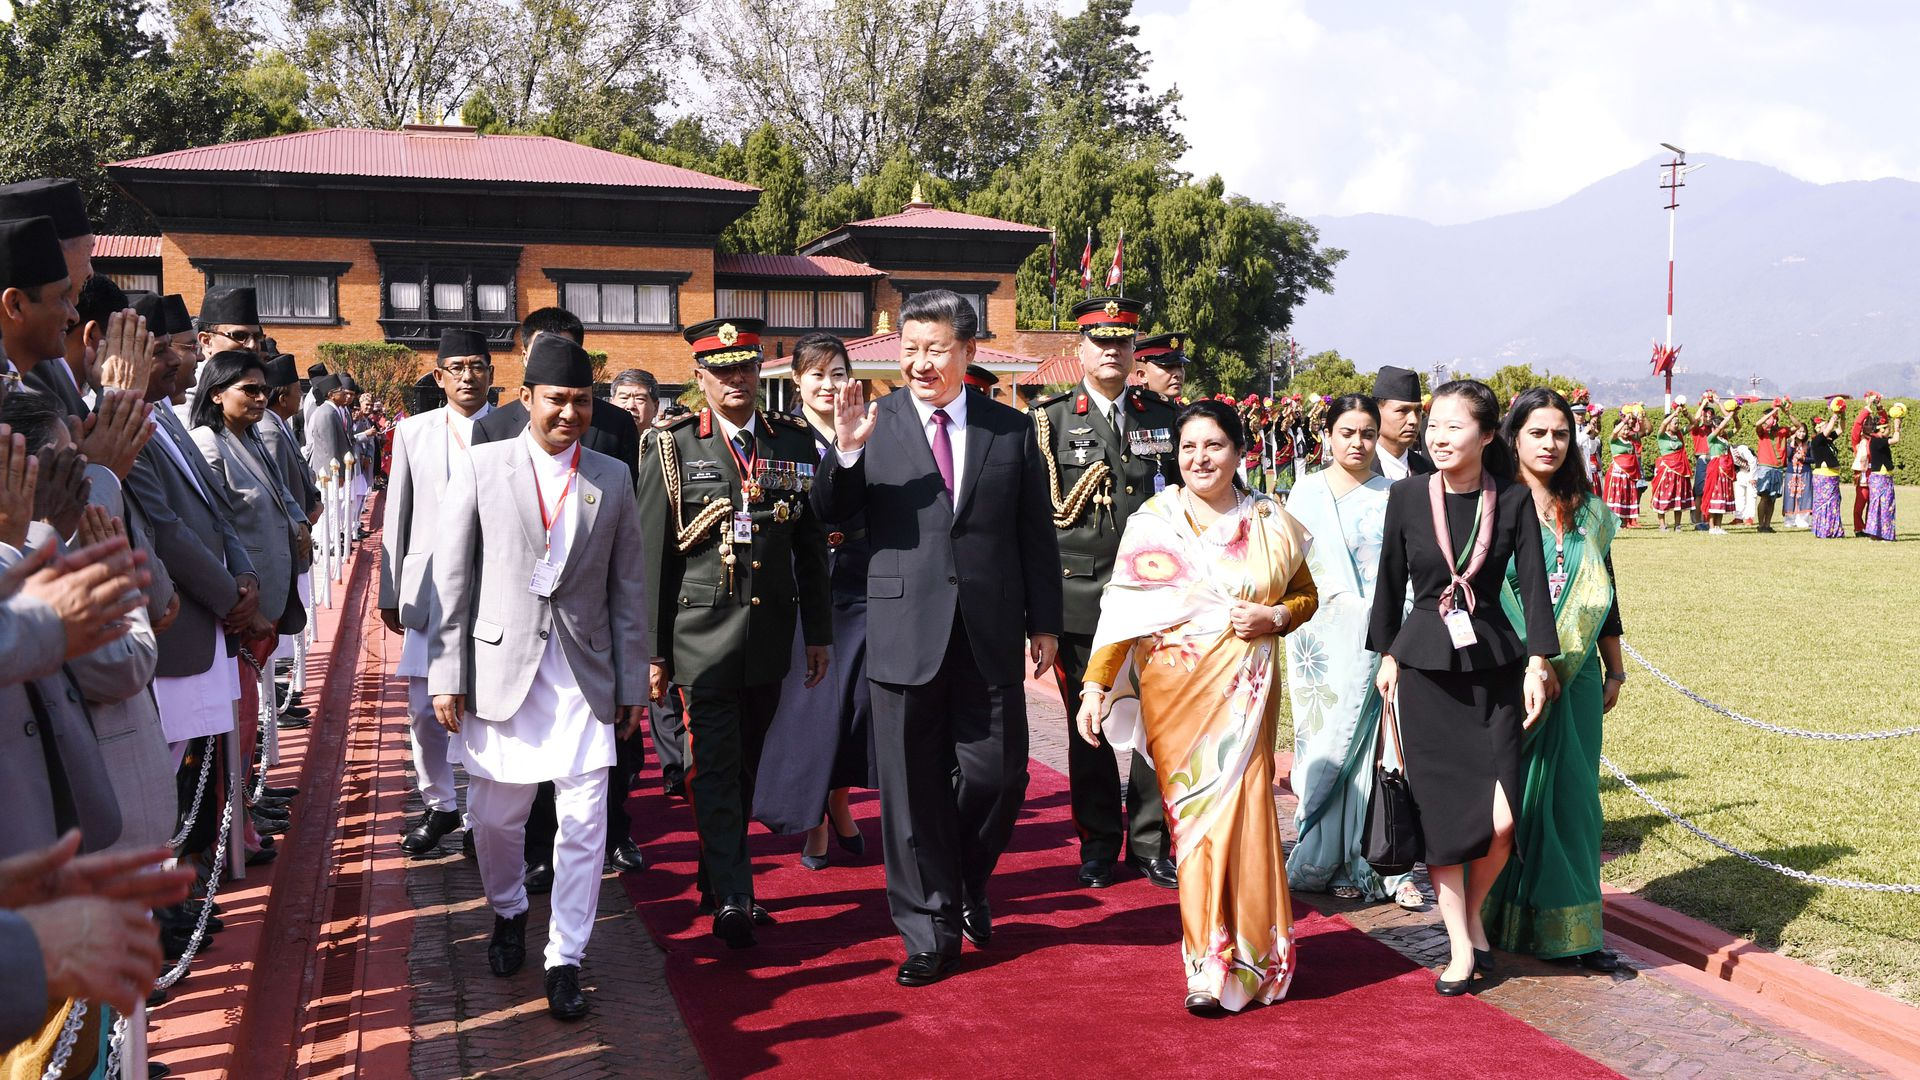 China's growing influence on display in Xi's Nepal visit